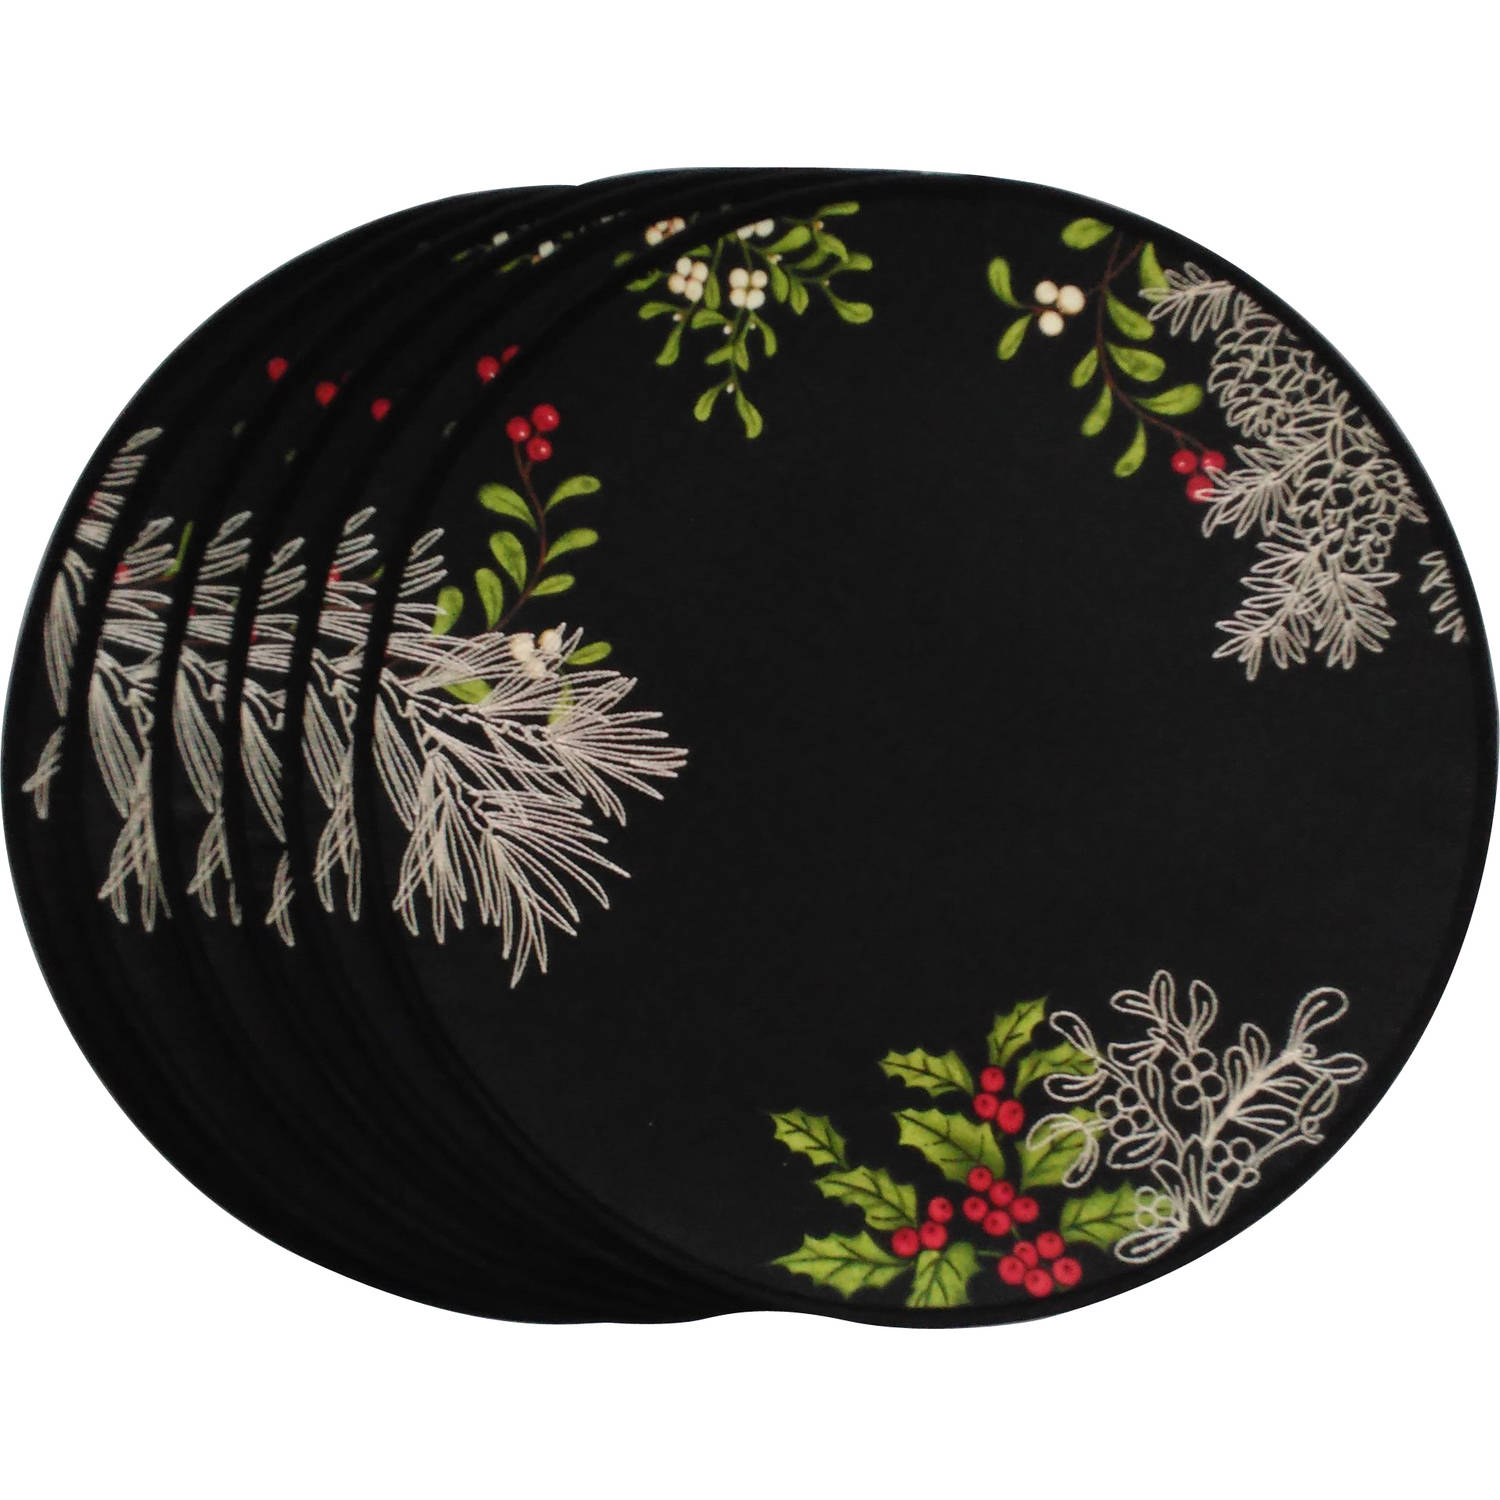 Better Homes and Gardens Black Placemat, 6pk